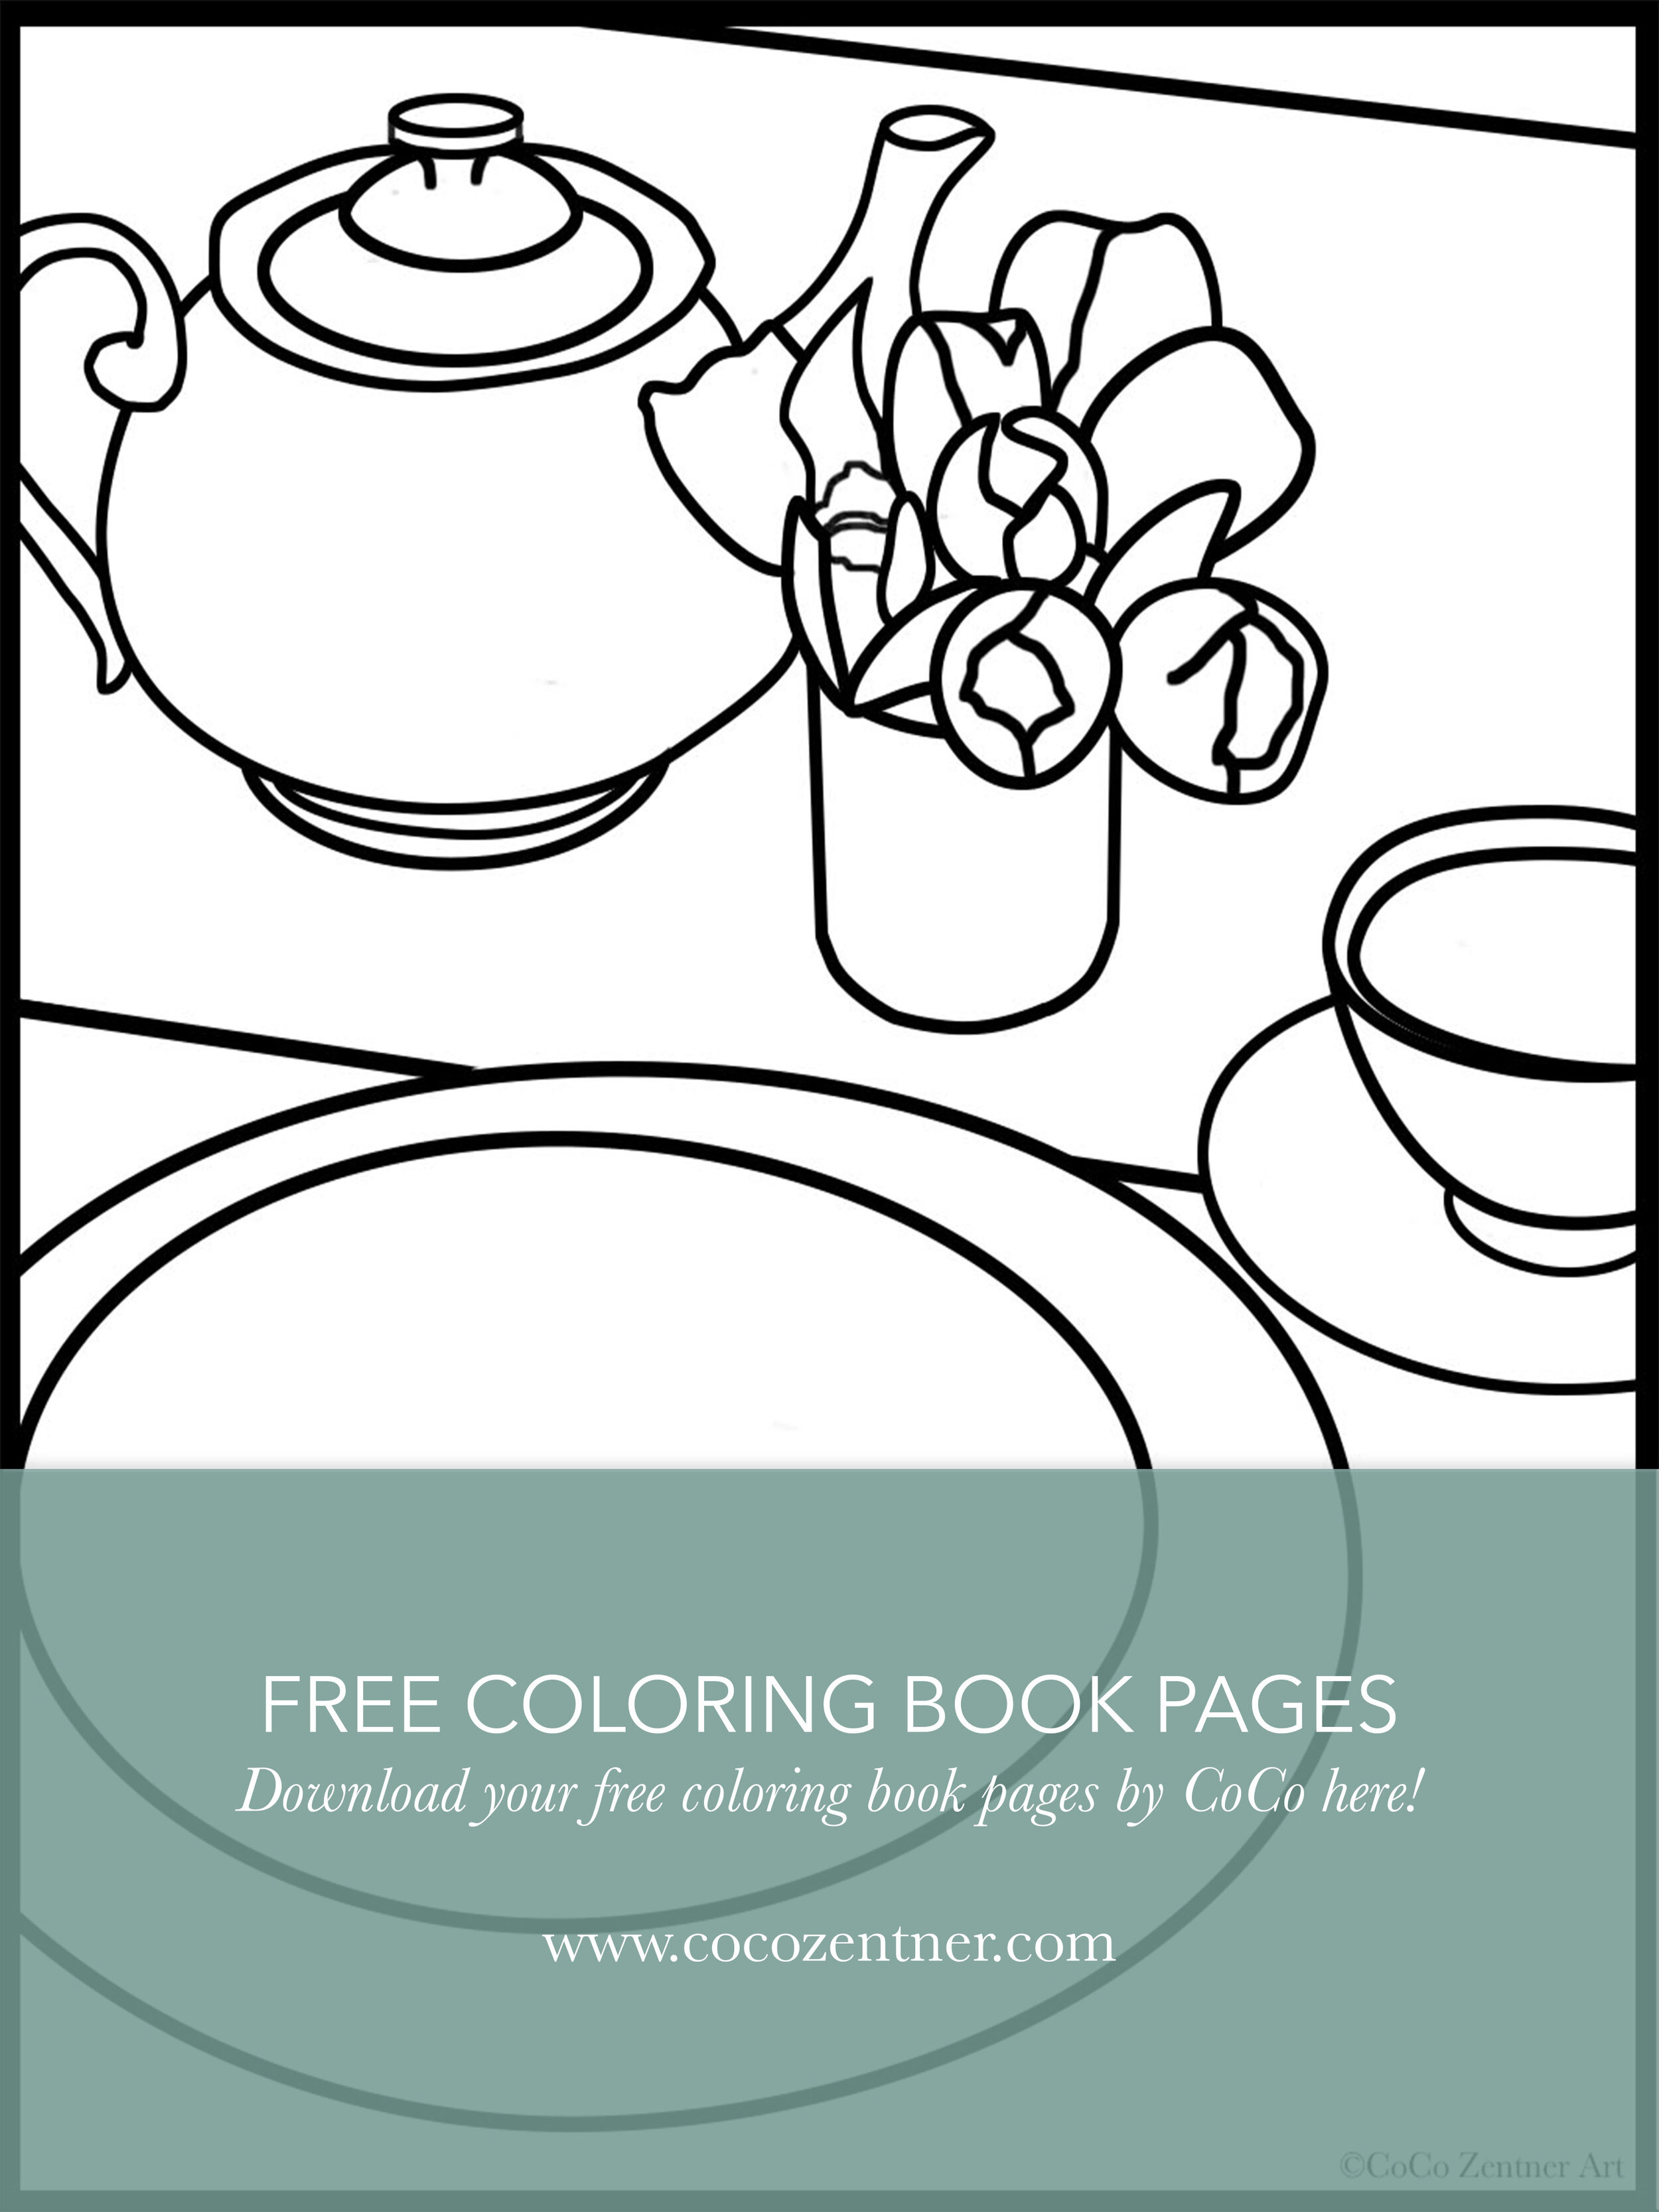 - Just For Fun! Resources For Free Downloadable Coloring Book